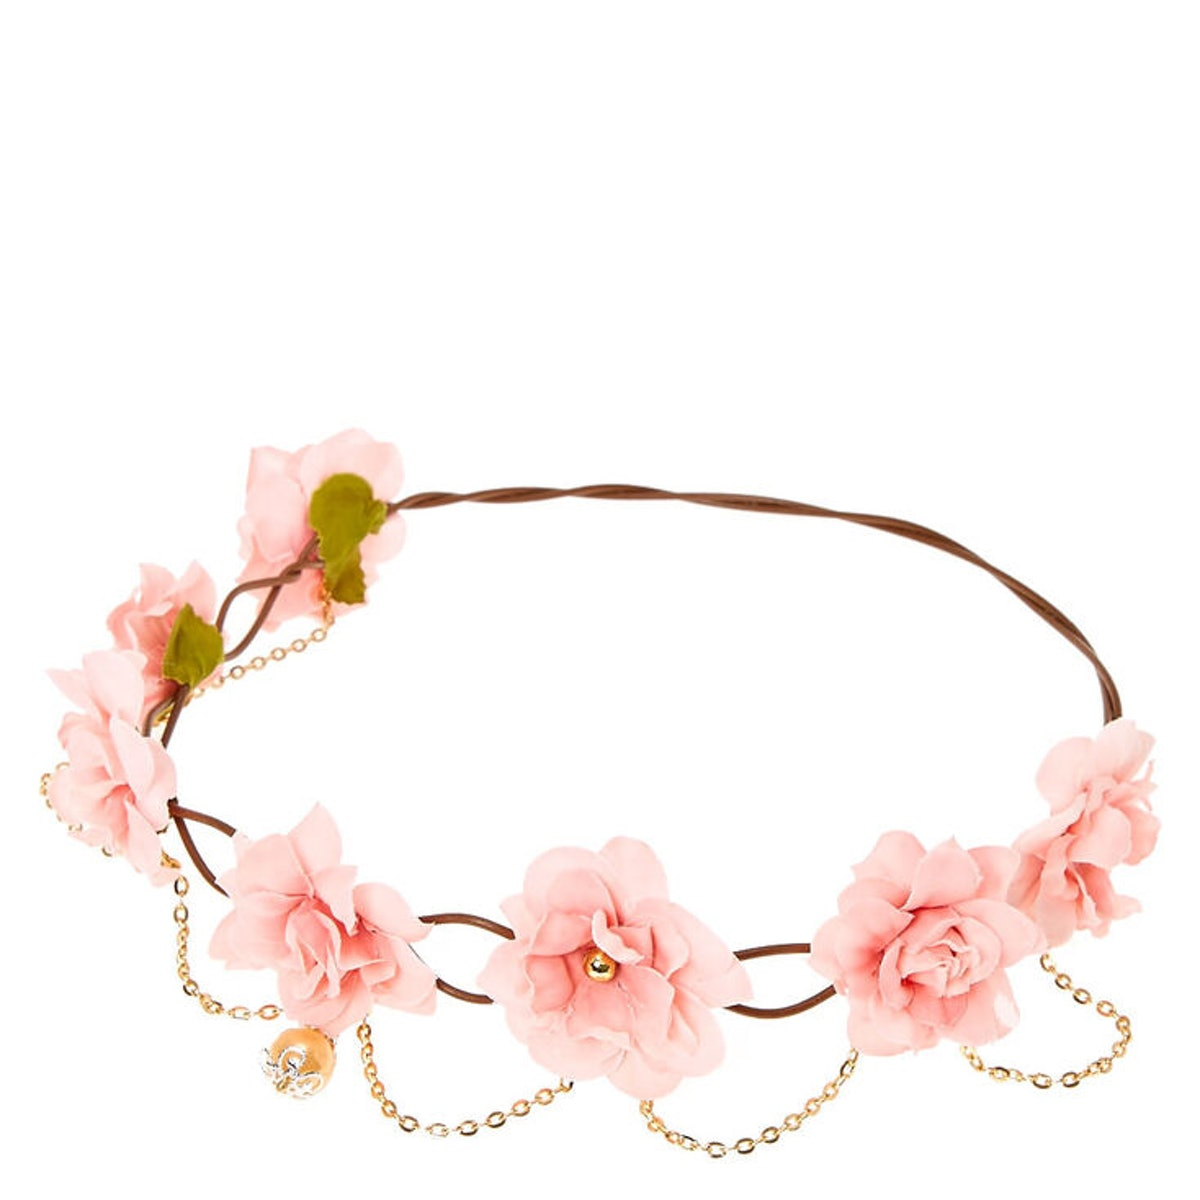 Claire's Gold Chain Flower Crown Headwrap